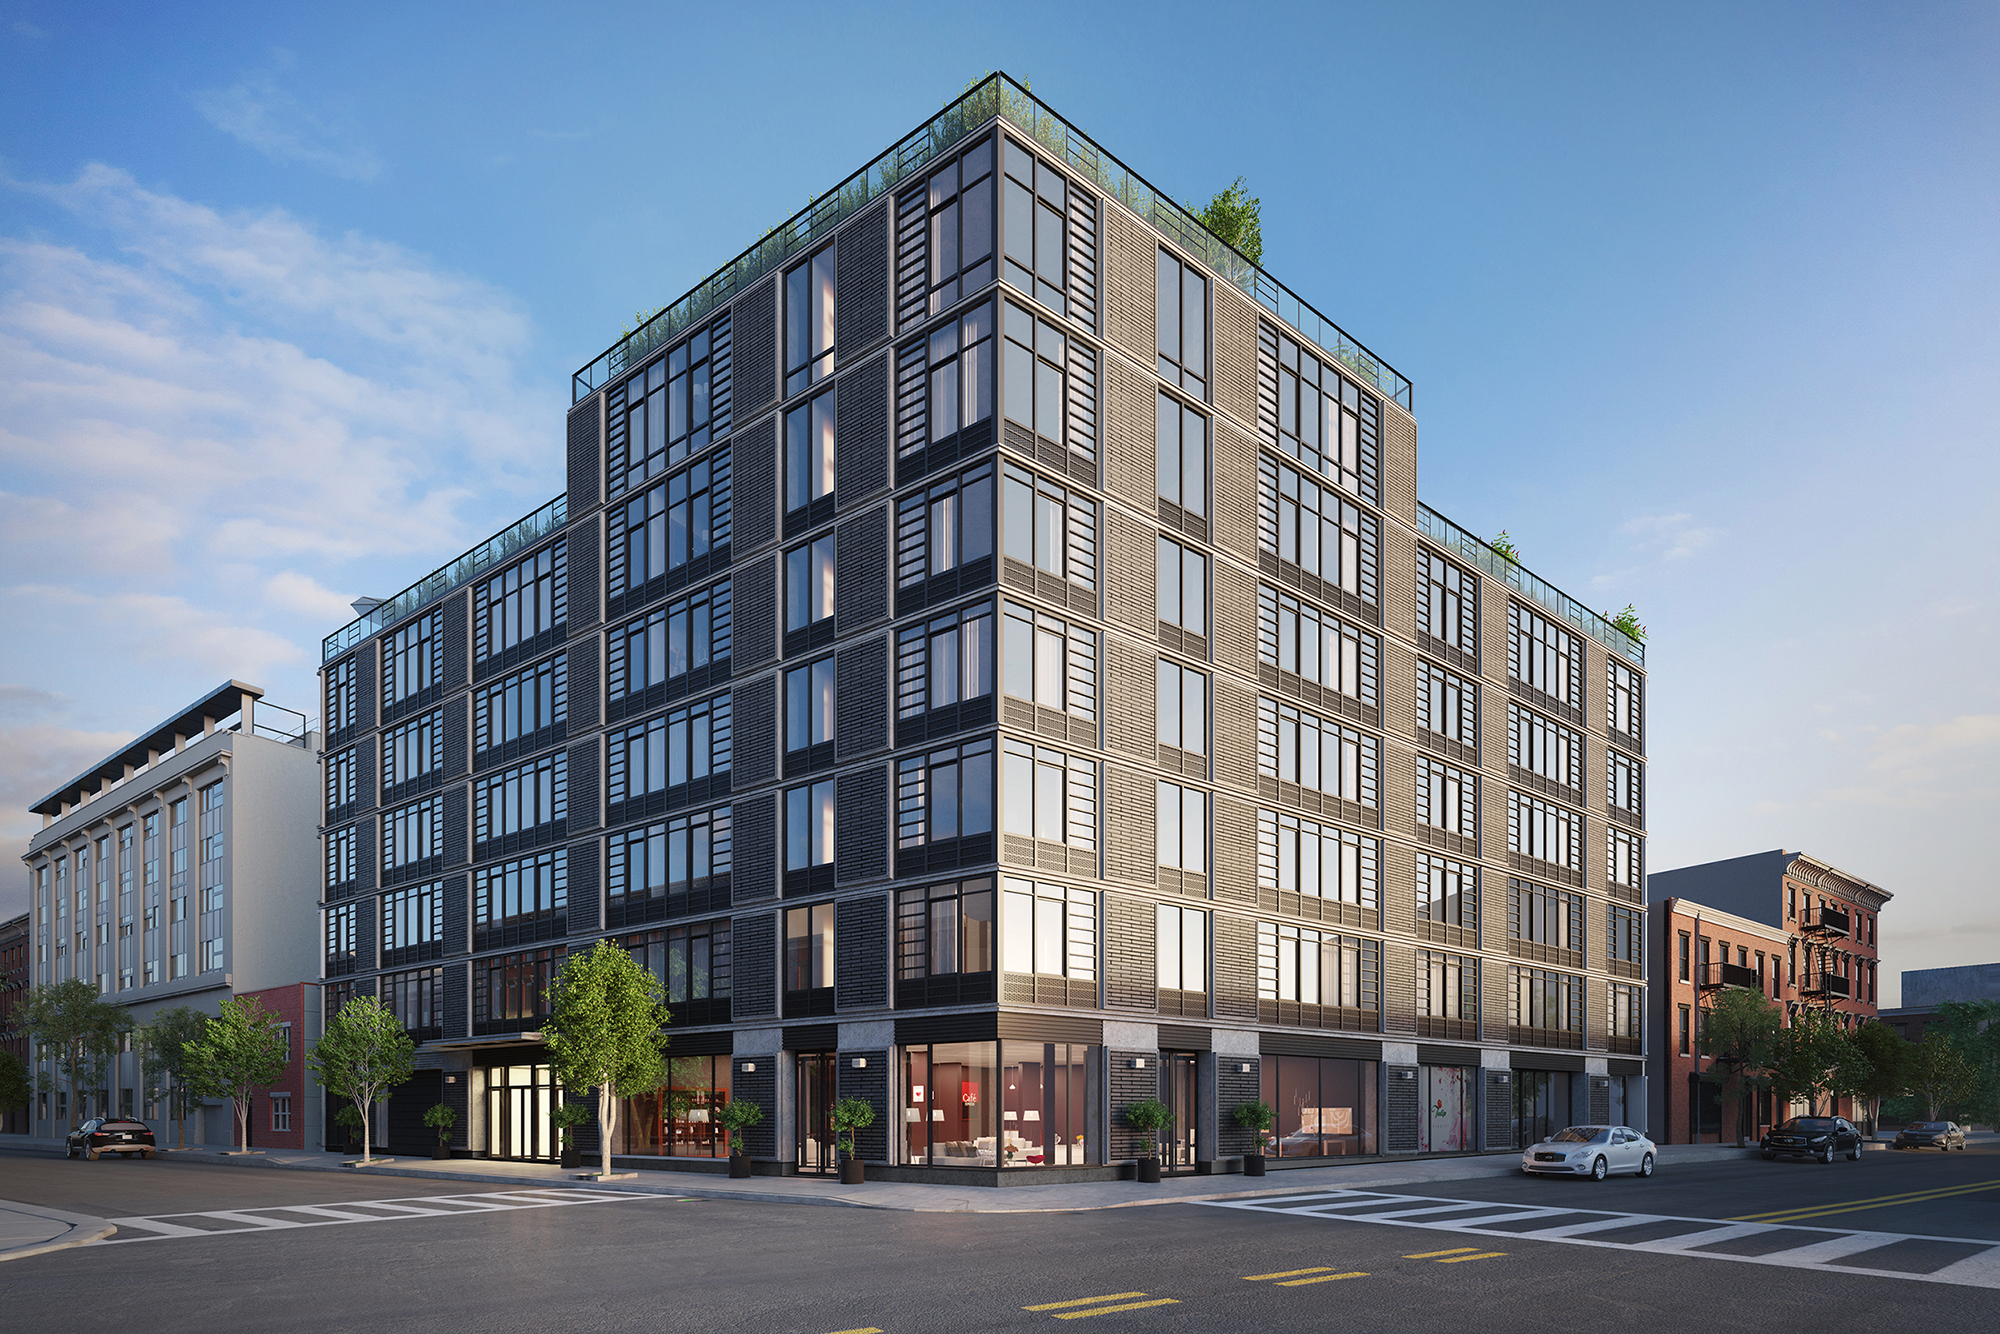 Rendering of Waverly Brooklyn at 500 Waverly Avenue. Credit: Millarc